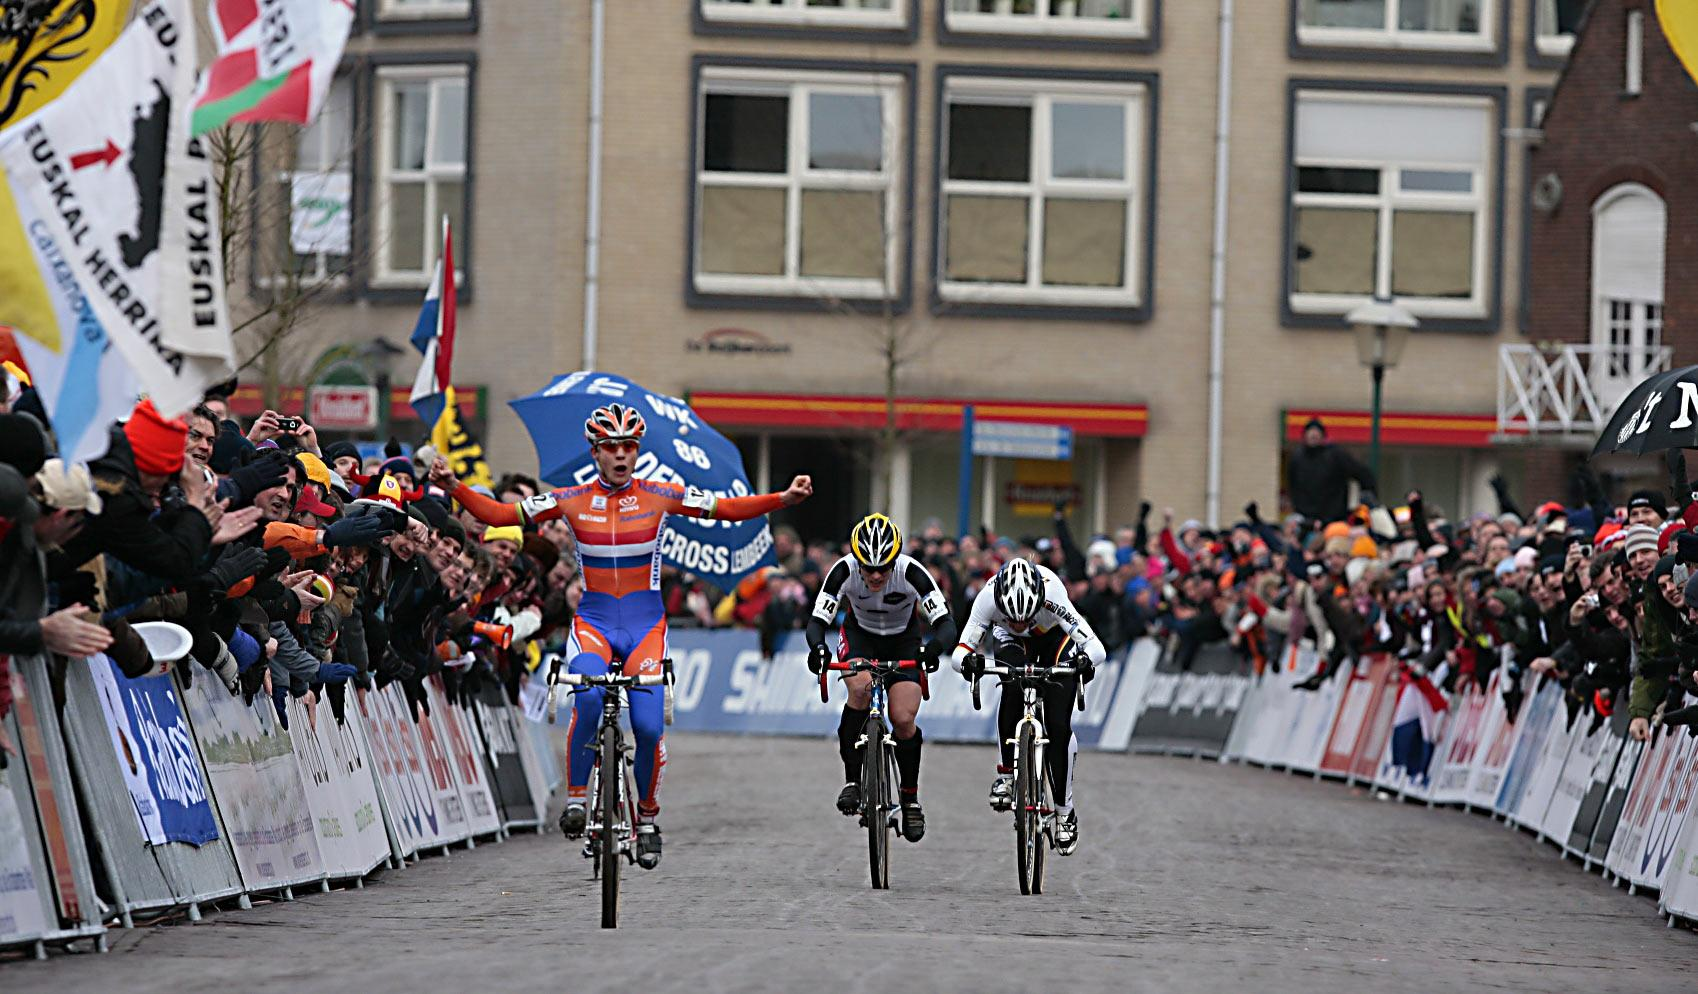 Marianne Vos will attempt to repeat this finish this year at the 2014 UCI Cyclocross World Championships in Hoogerheide, but on Saturday.